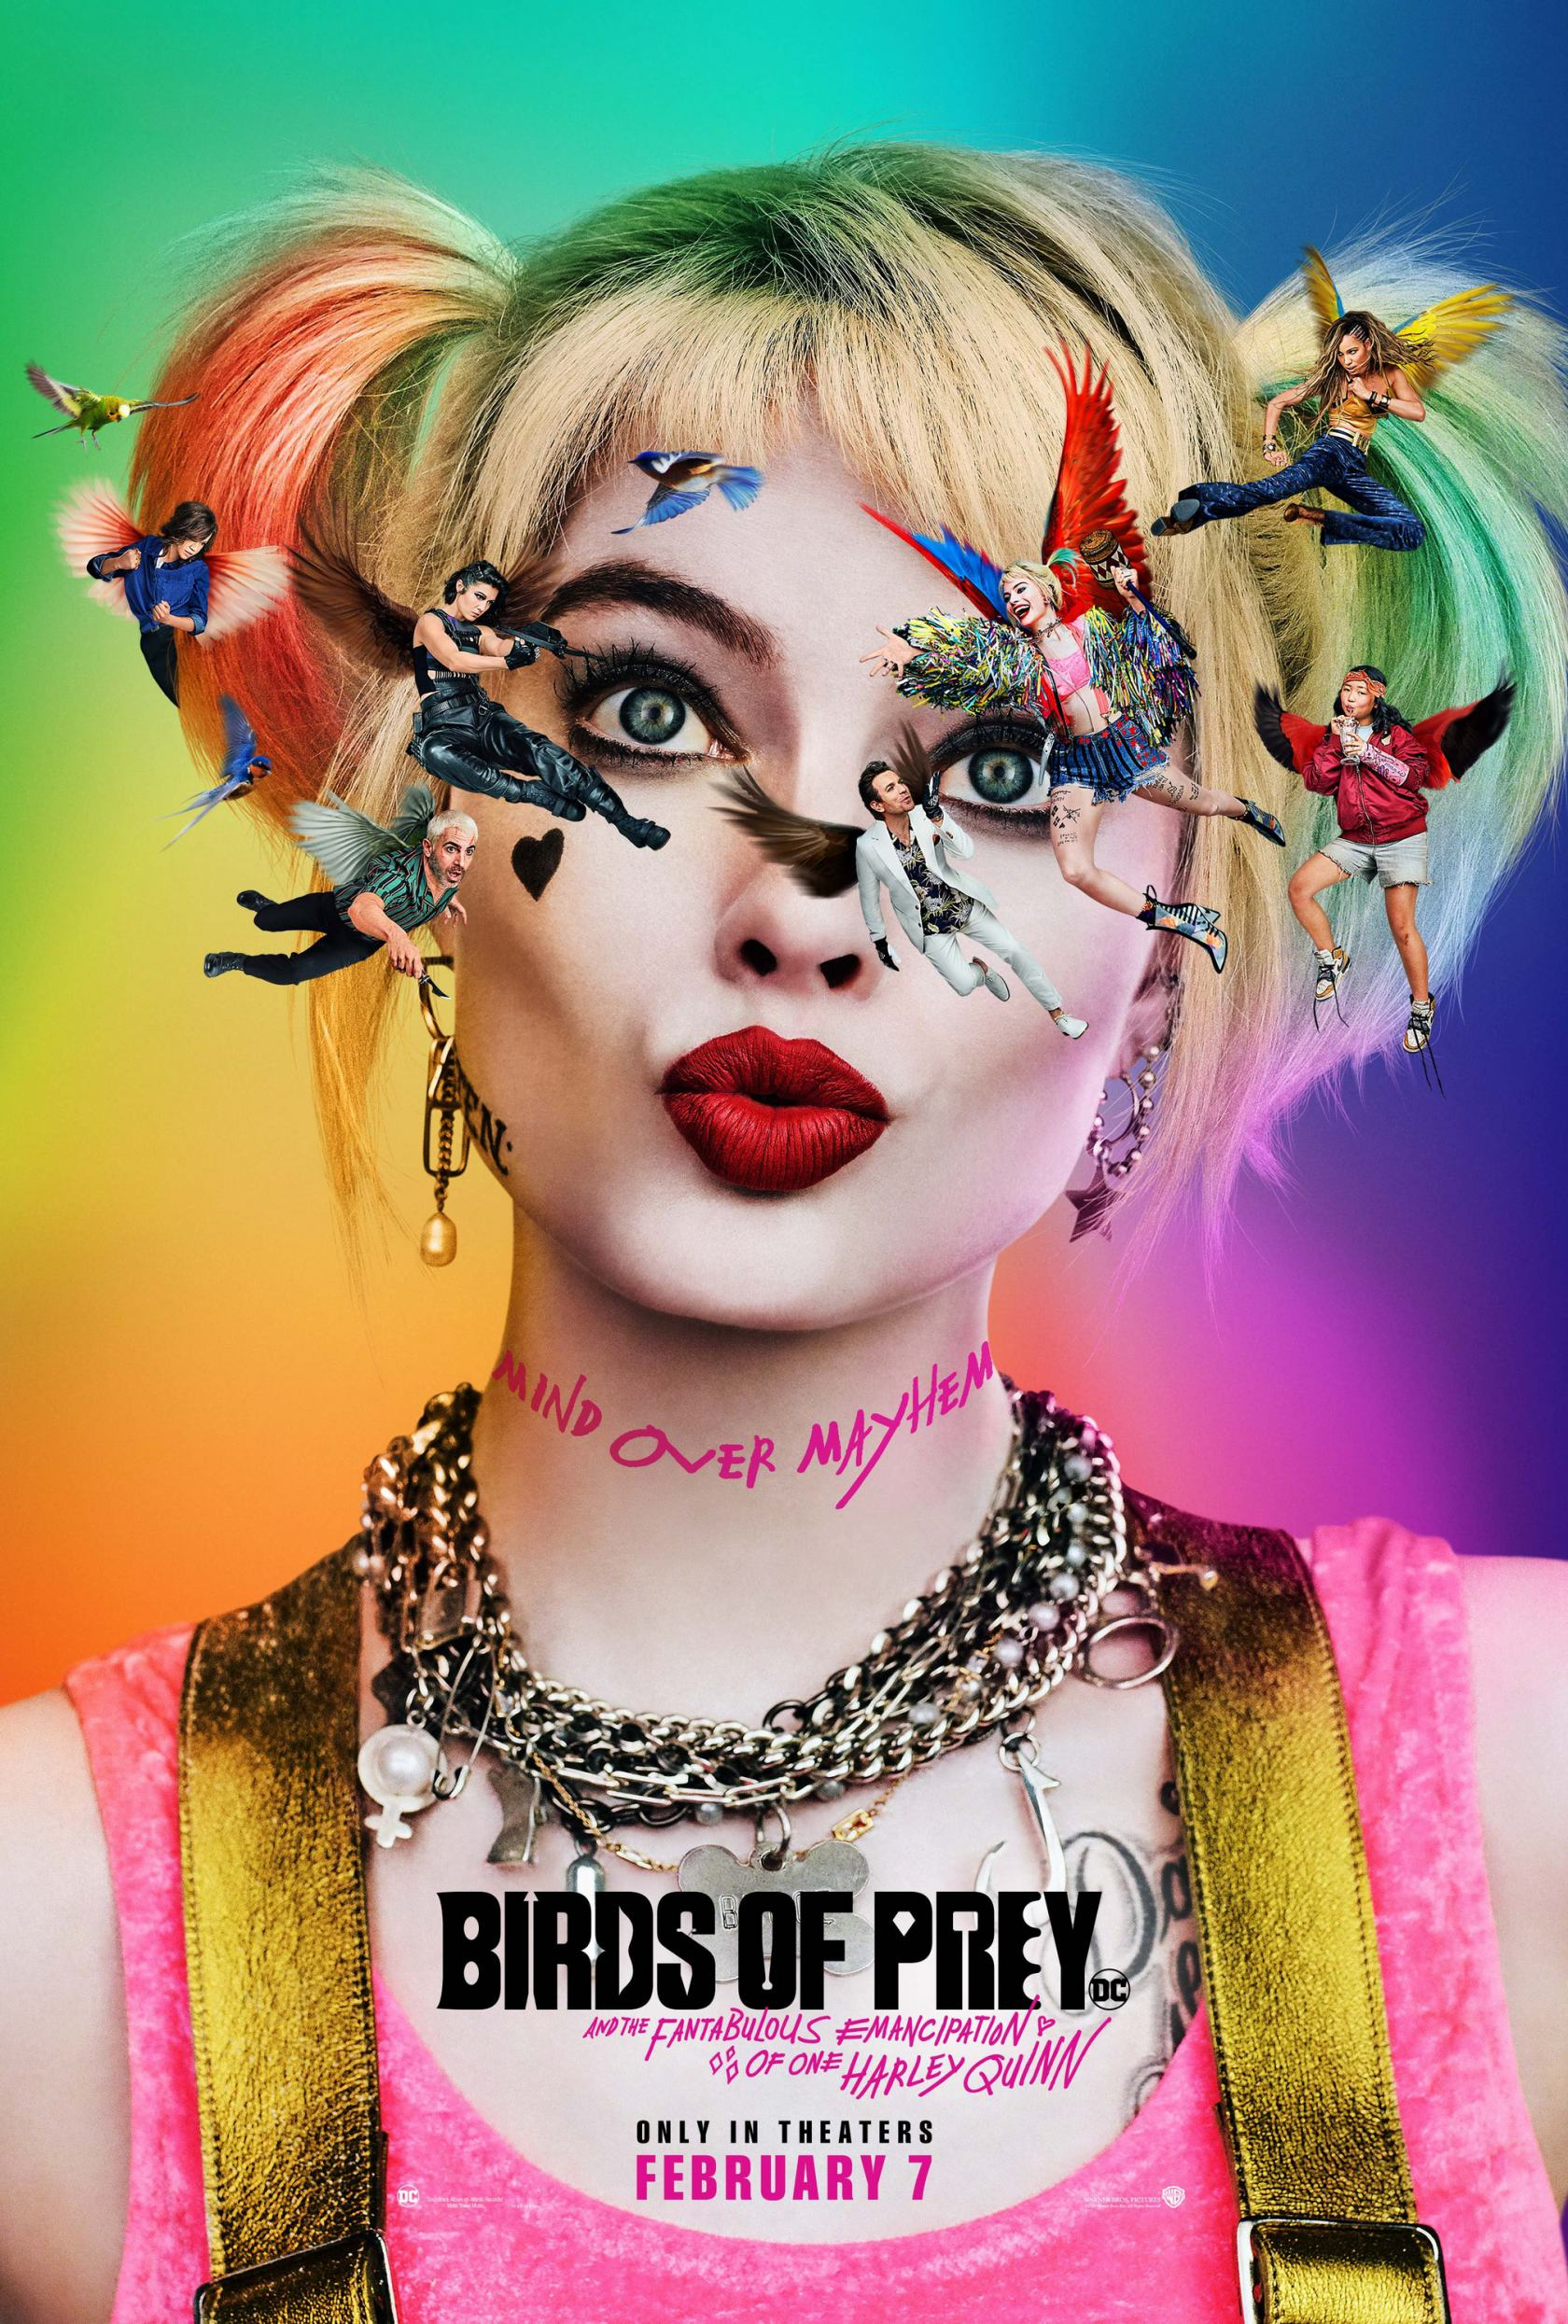 Birds of Prey (And the Fantabulous Emancipation of One Harley Quinn) Poster #1